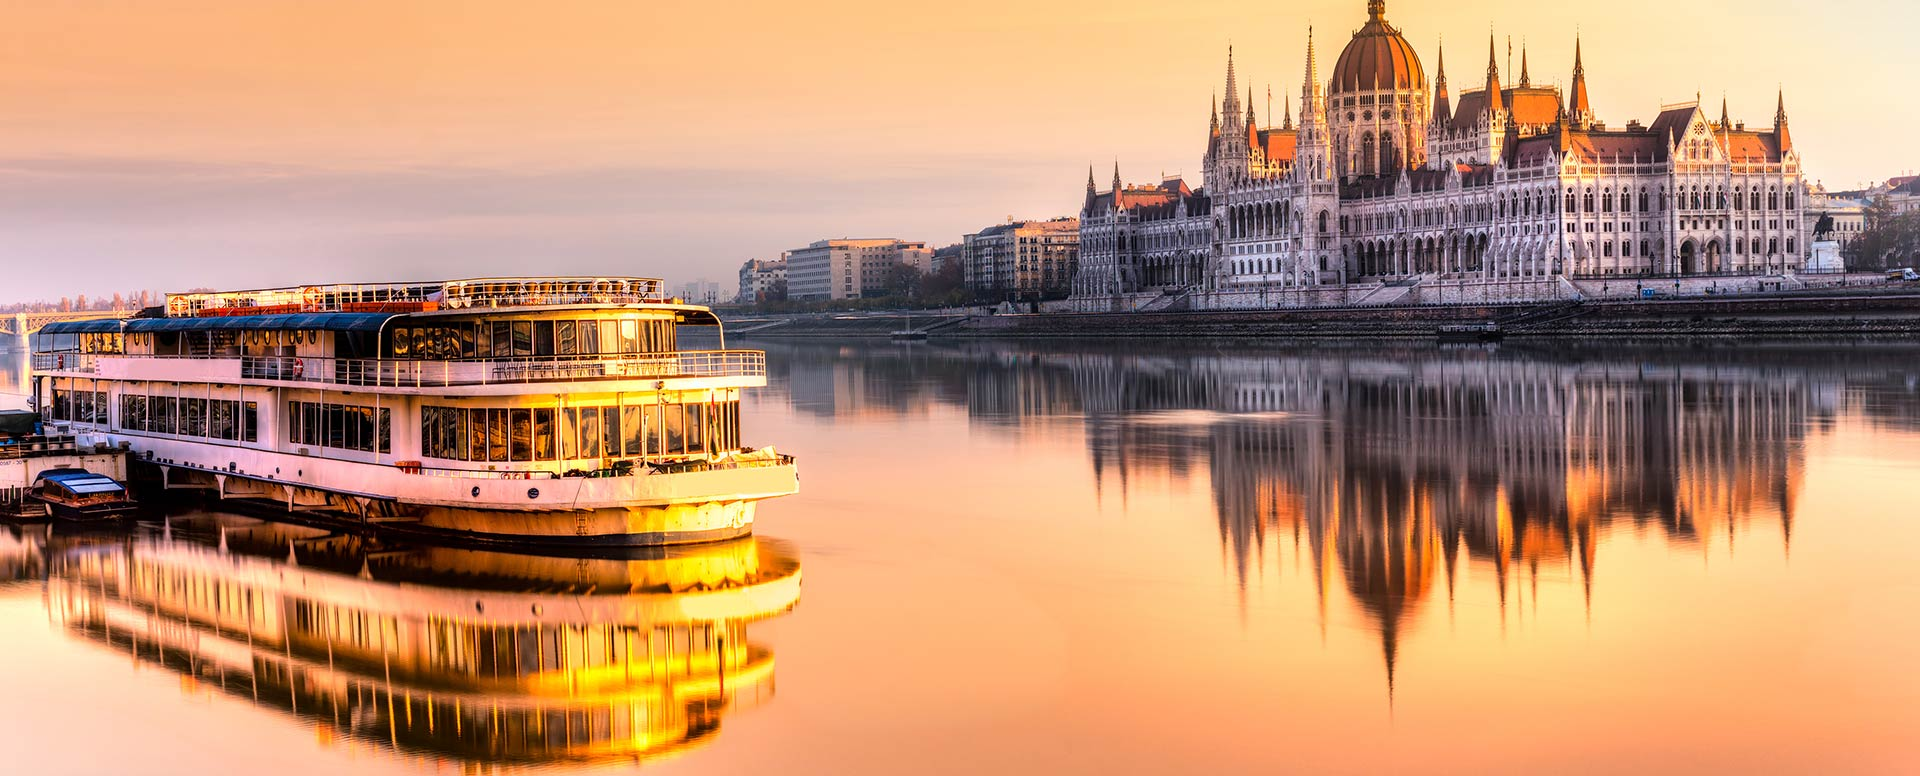 Discounted flight tickets to Hungary - IFlyFirstClass